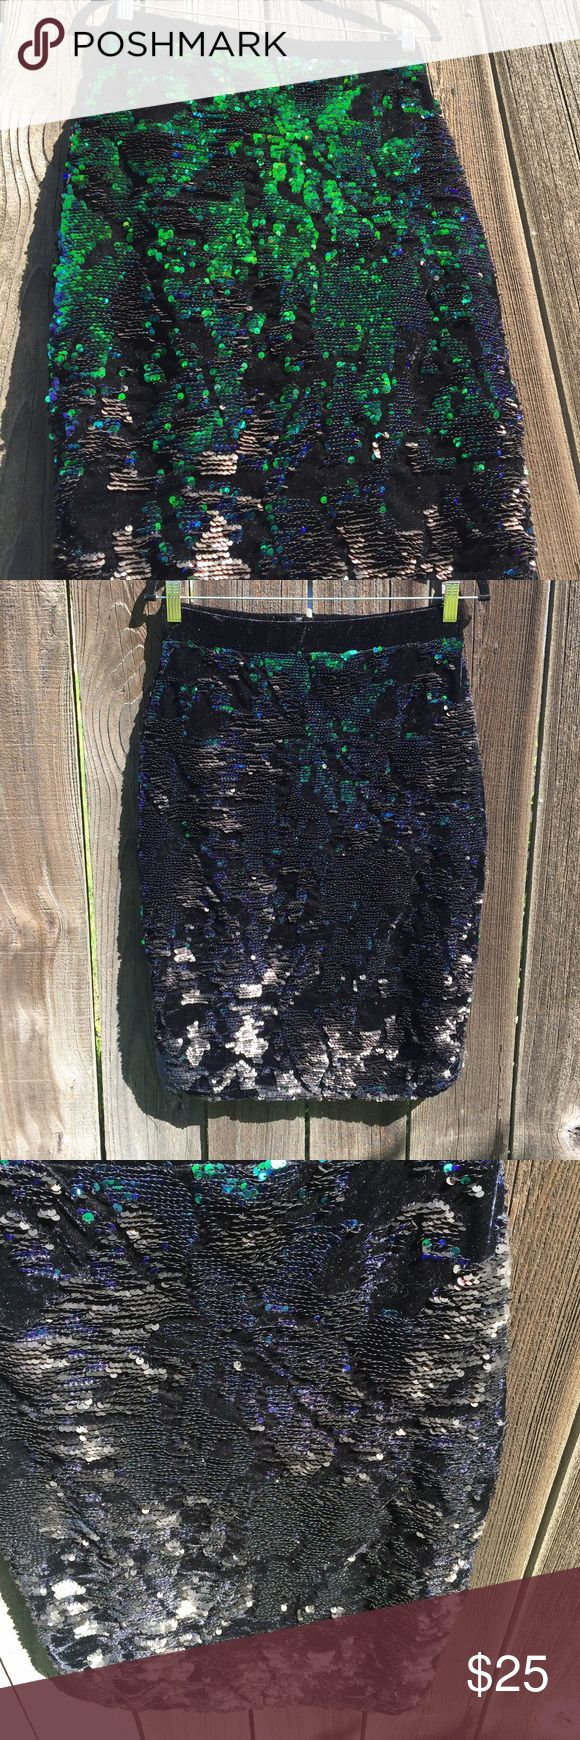 Topshop Velvet Sequin skirt This skirt by Topshop is very unique! It fit me in the waist but I didn't have the hips to wear it. It is all black velvet with two tone sequins on it. You can flip the sequins one way for a blue/green turquoise color or lay it down for a matte black. (I tried to show this in the pics) It is a thick skirt & has an exposed zipper on the back. For length, it should sit on the knee.  If it doesn't fit, you can probably still return it at Nordstrom, for store credit…